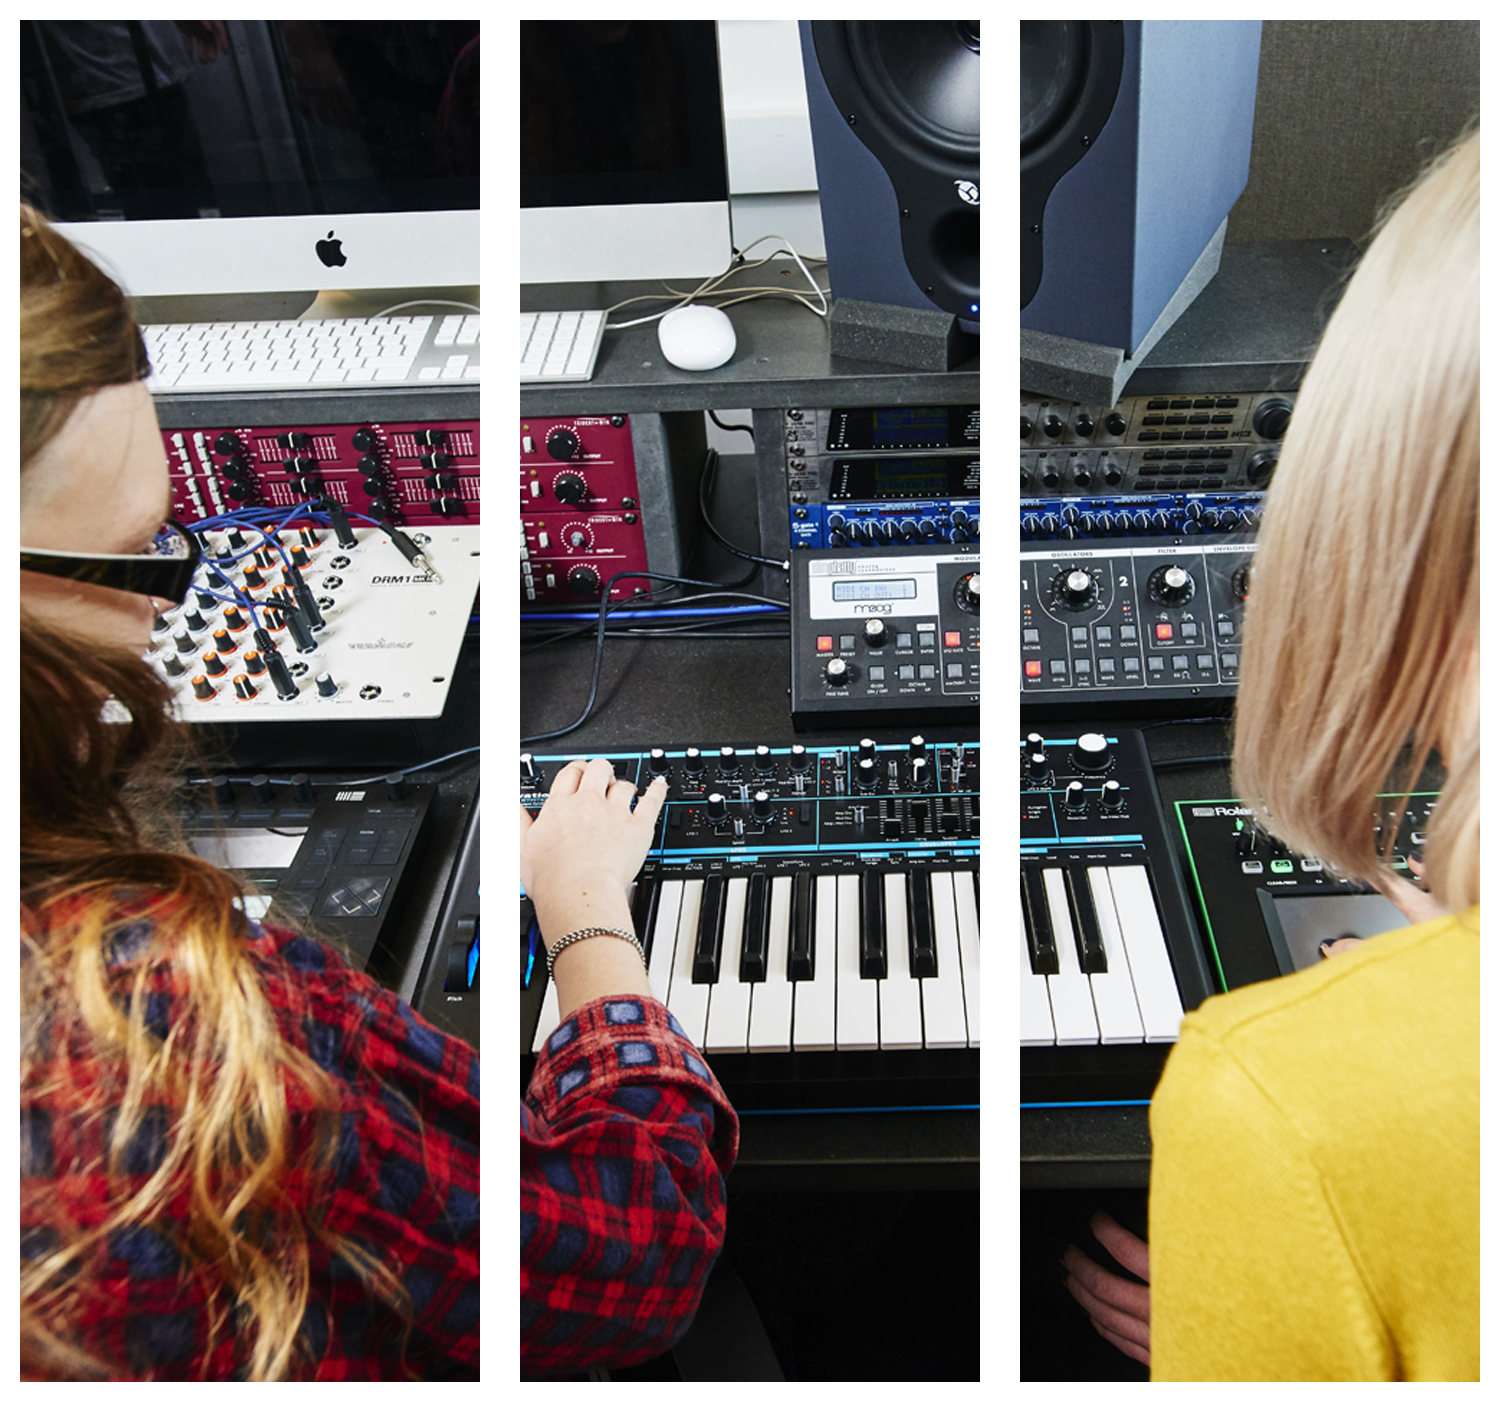 Study Music Production at dBs Music Plymouth | Diploma & Degree Courses in Music Technology, DJing, Music Production and more.